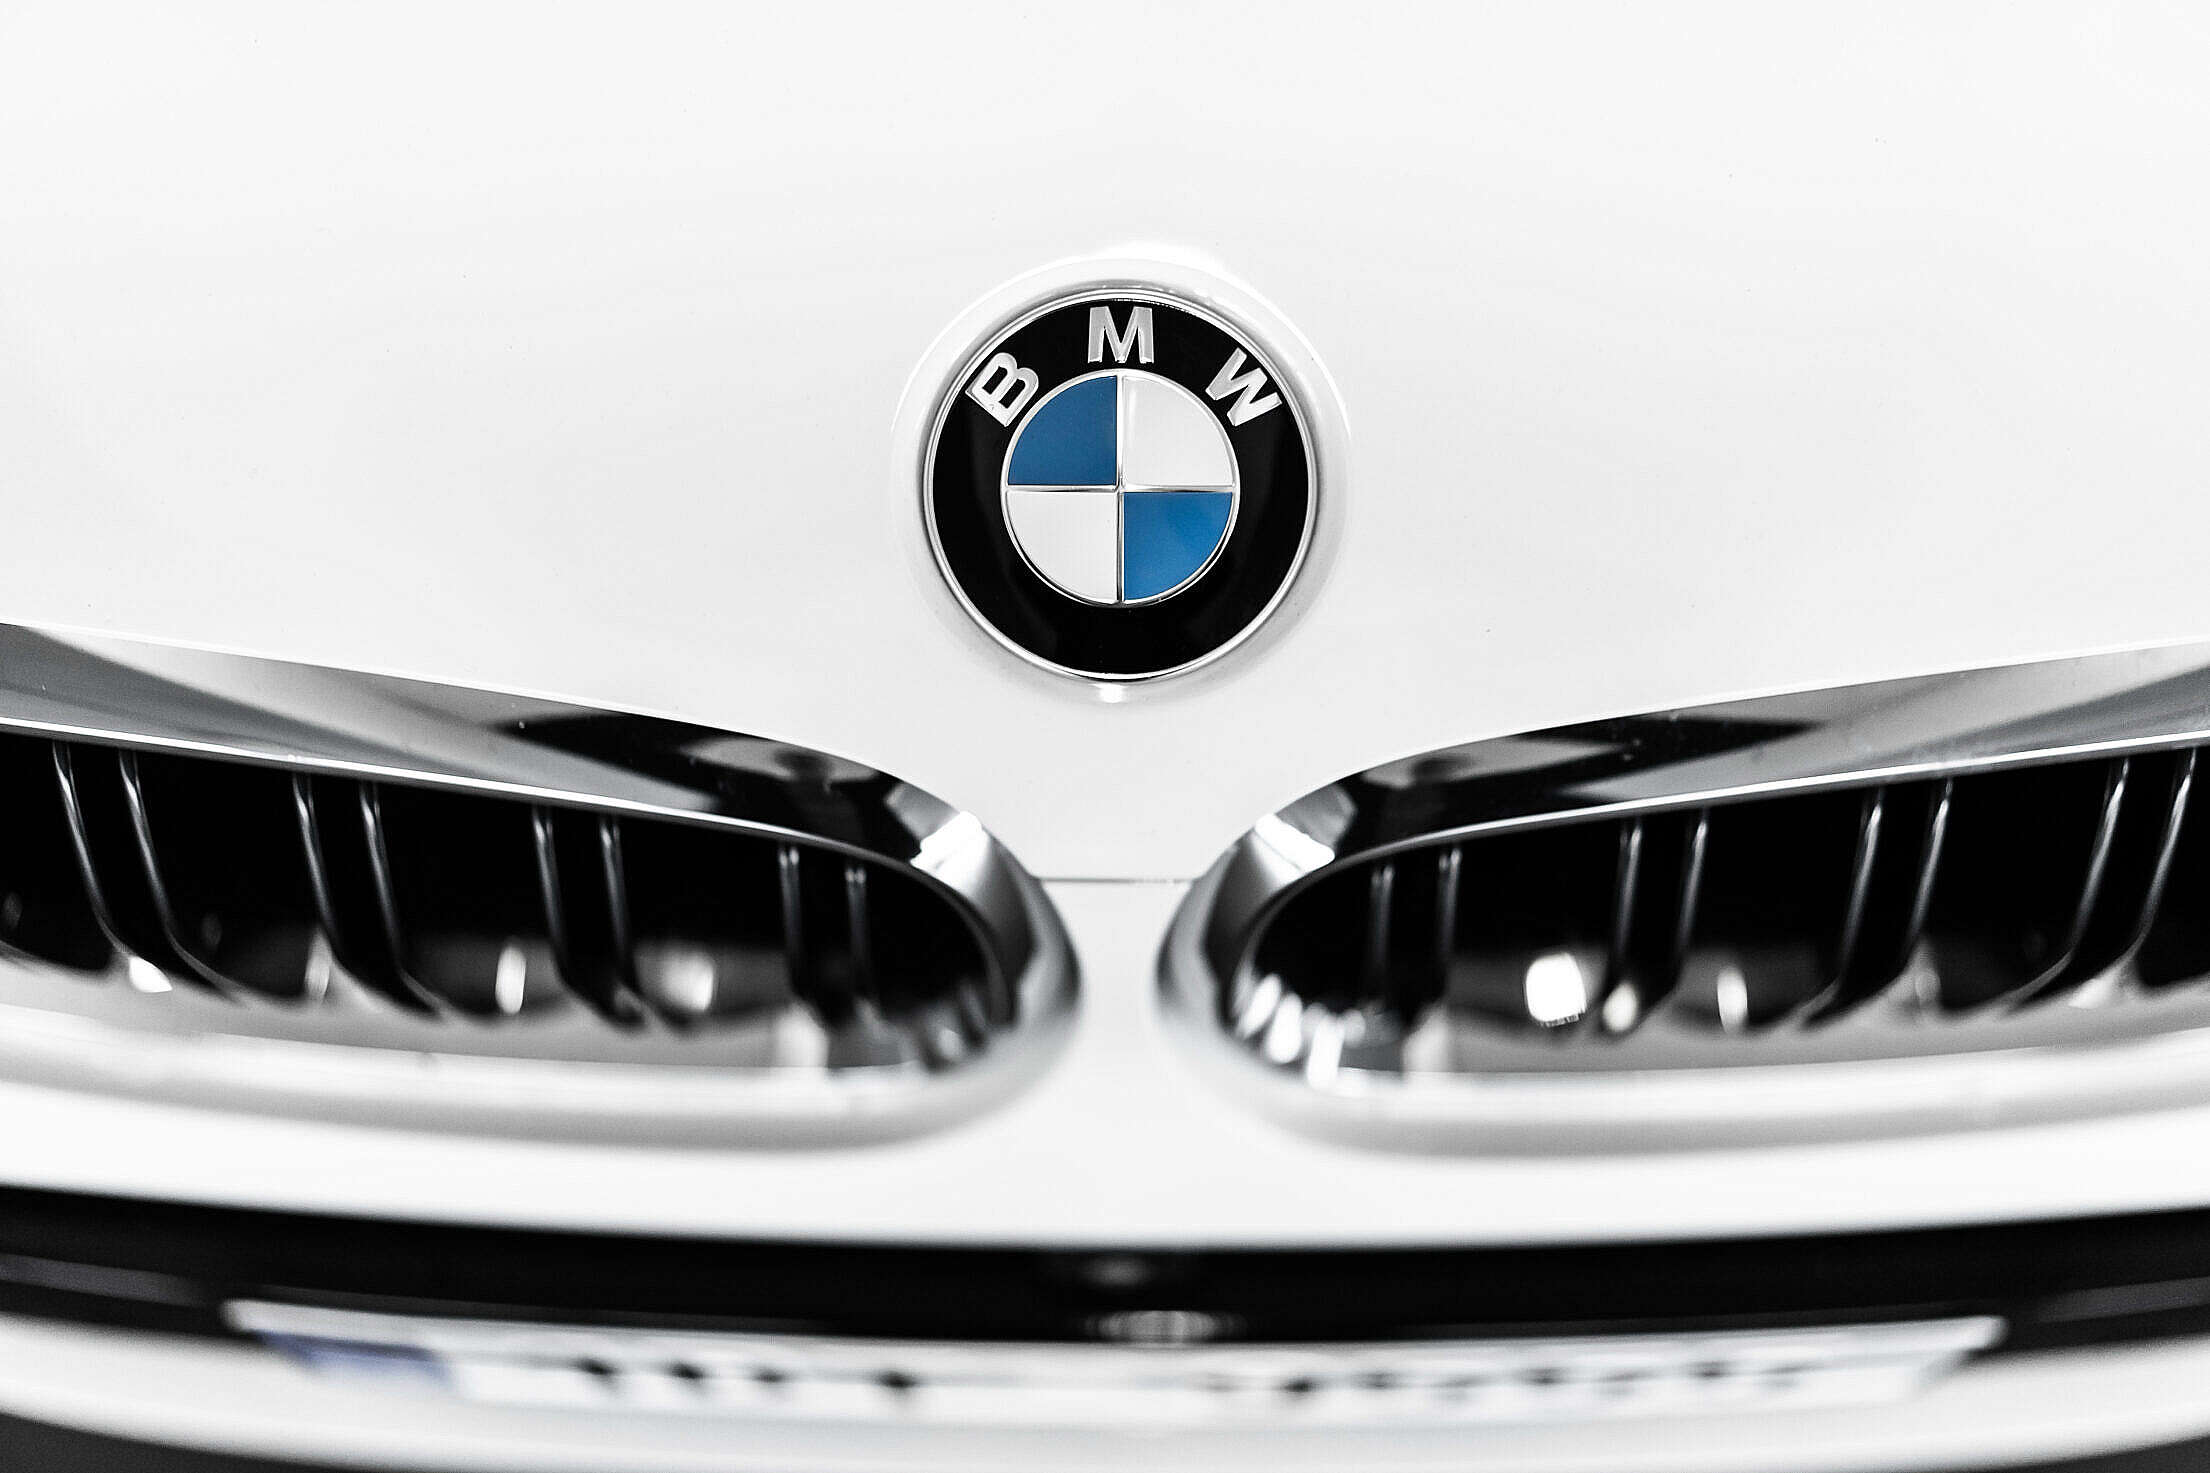 Front Grille of a BMW Car Free Stock Photo